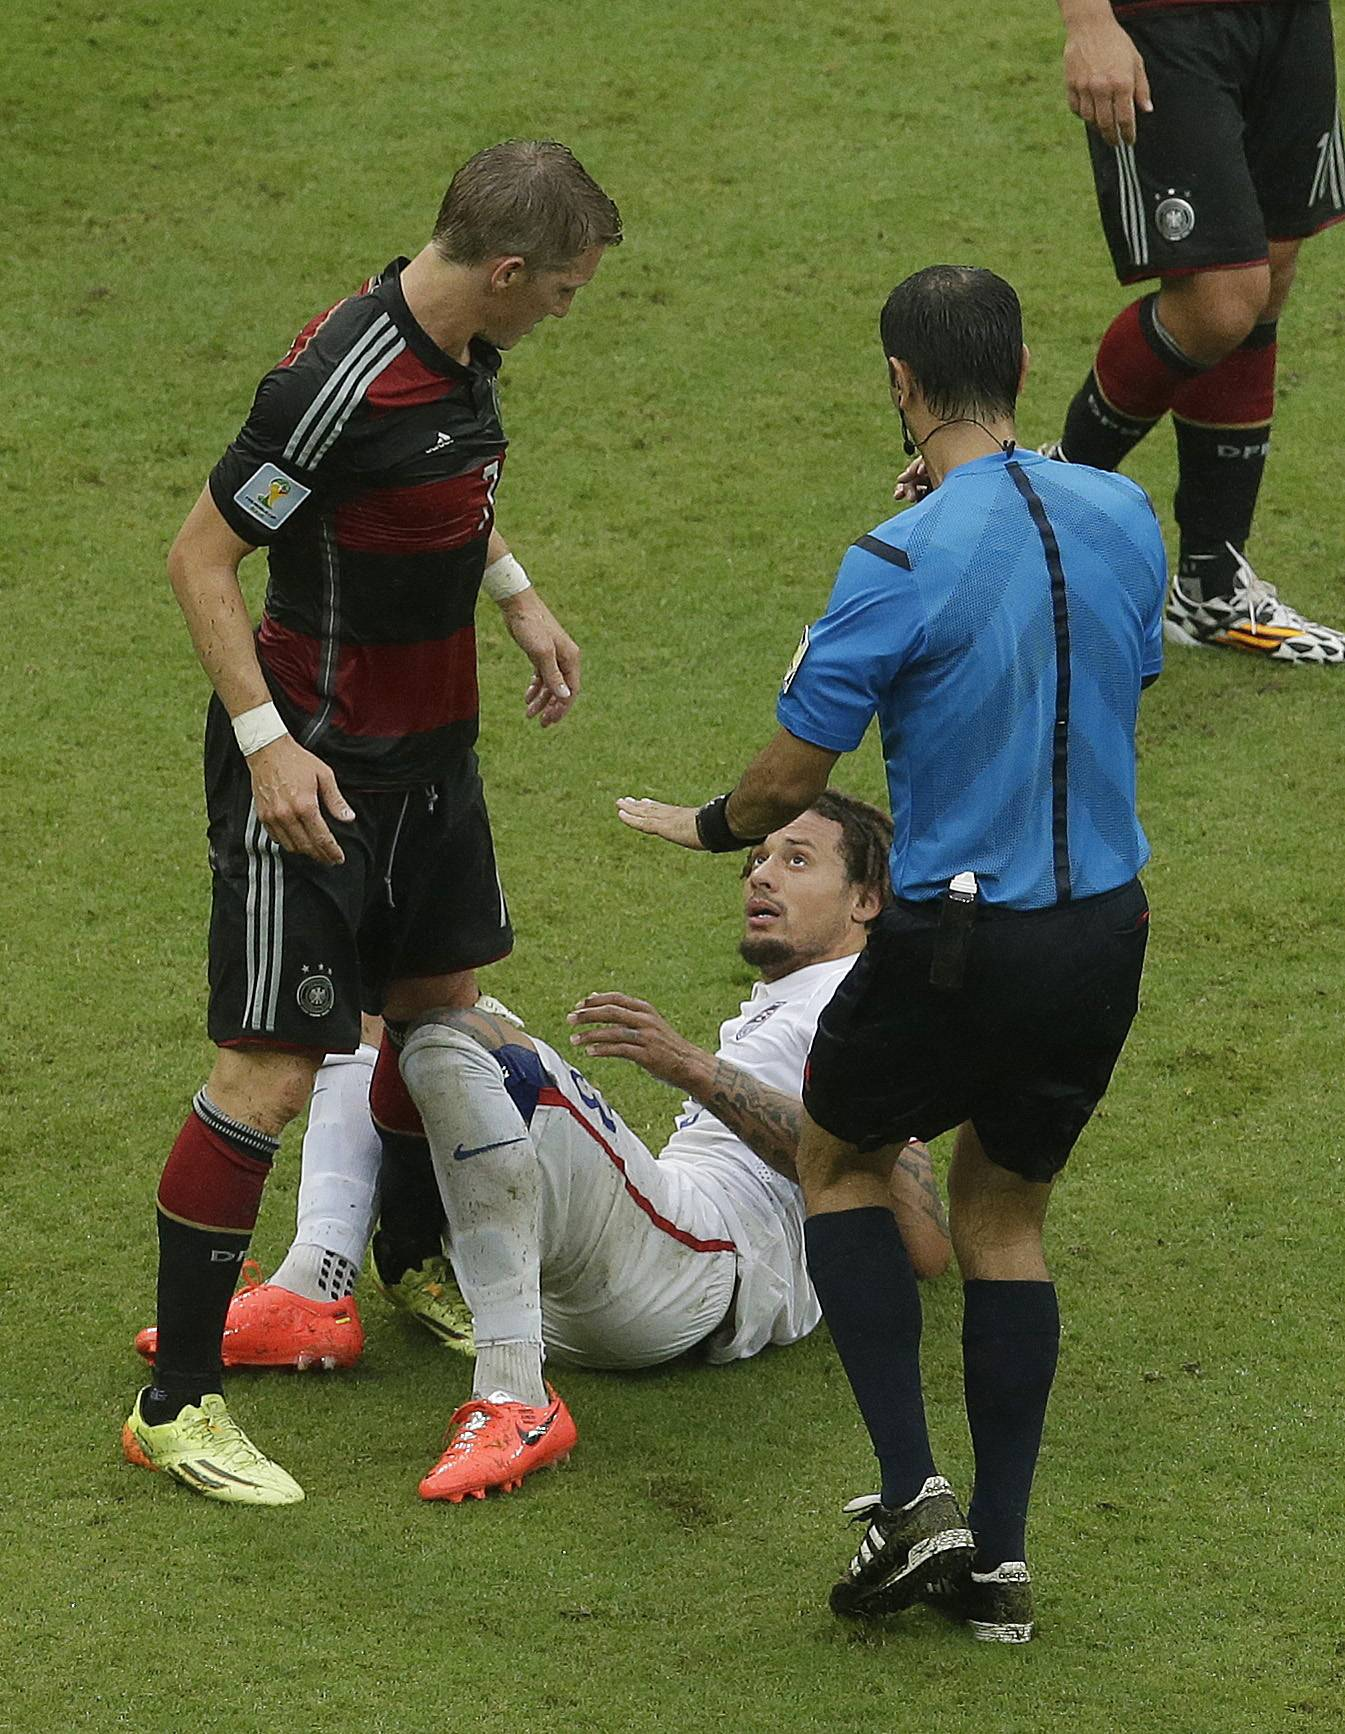 The referee warns United States' Jermaine Jones after a collision with Germany's Bastian Schweinsteiger, left, during the group G World Cup soccer match between the USA and Germany at the Arena Pernambuco in Recife, Brazil, Thursday, June 26, 2014.